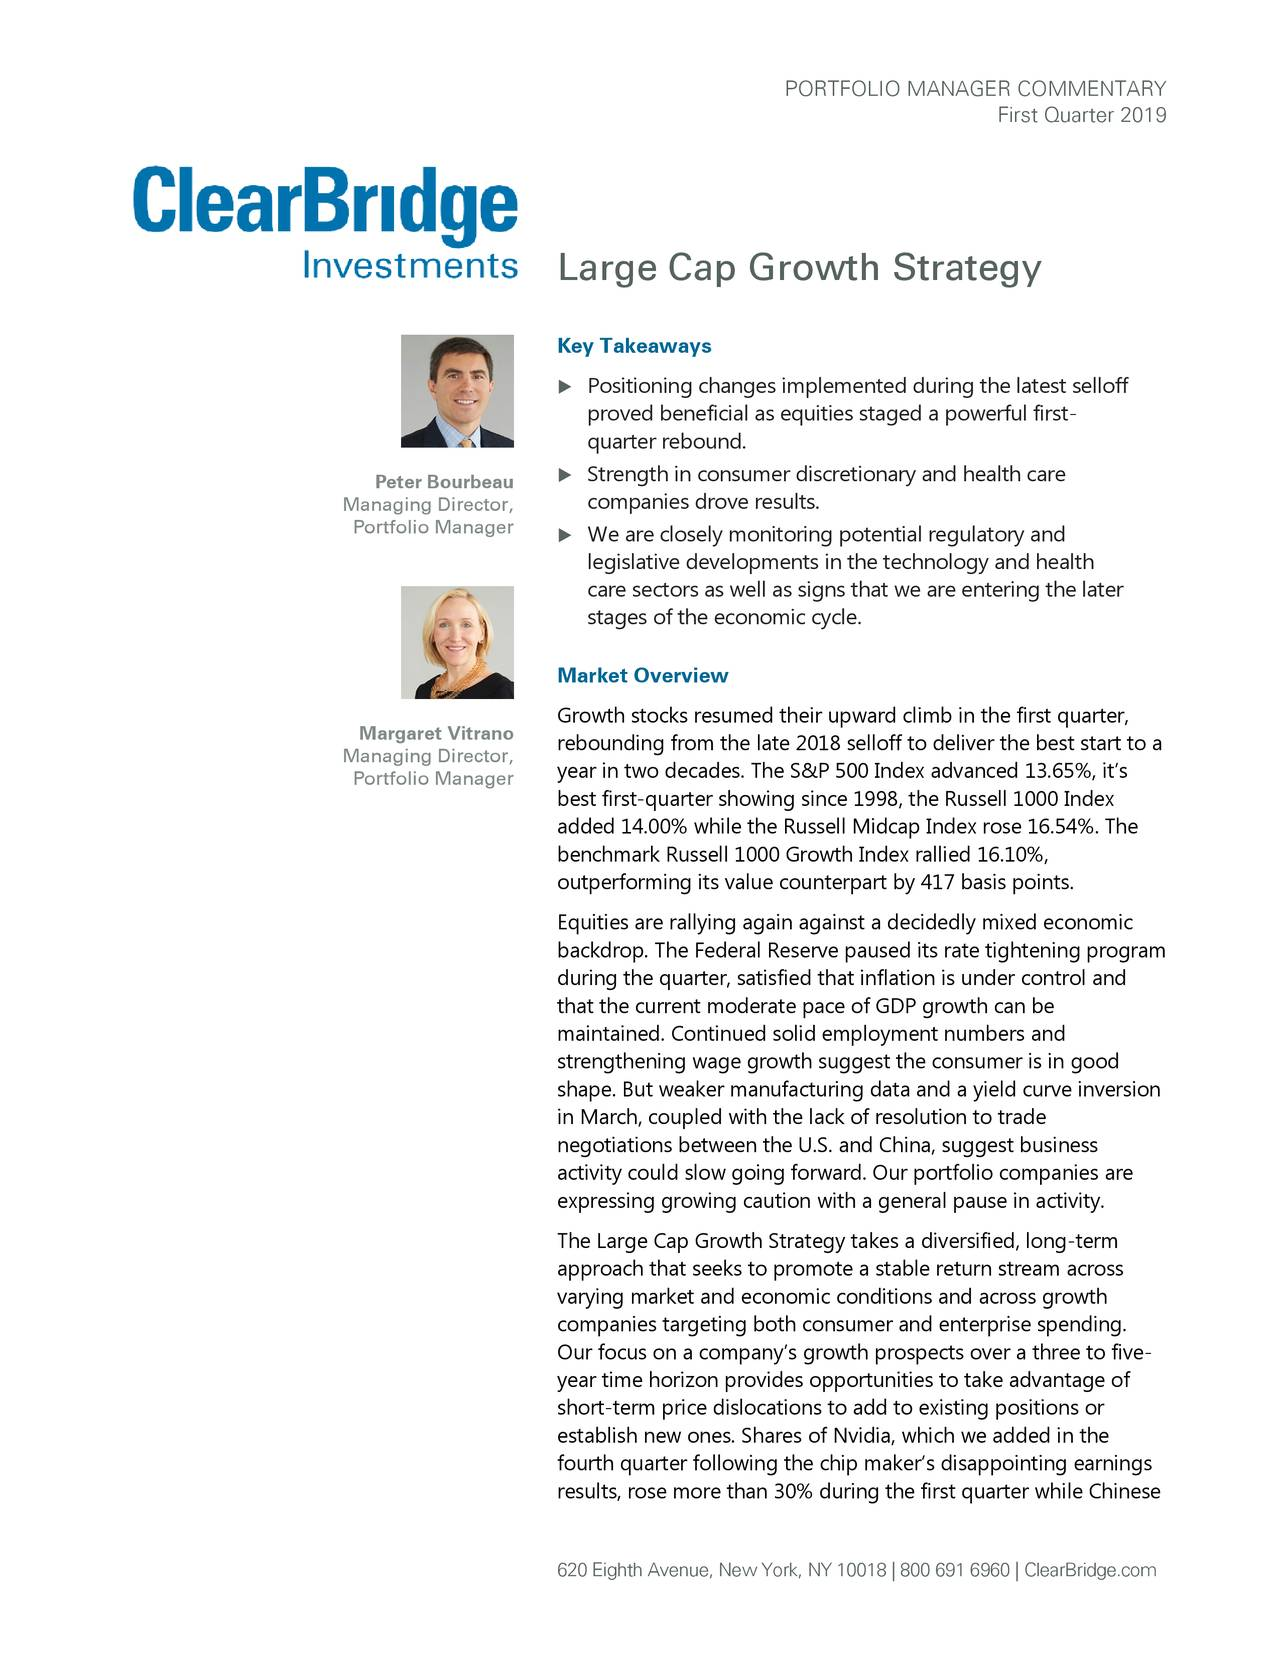 First Quarter 2019 Large Cap Growth Strategy Key Takeaways  Positioning changes implemented during the latest selloff proved beneficial as equities staged a powerful first - quarter rebound. Peter Bourbeau  Strength in consumer discretionary and health care companies drove results . Managing Director, Portfolio Manager  We are closely monitoring potential regulatory and legislative developments in the technology and health care sectors as well as signs that we are entering the later stages of the economic cycle. Market Overview Margaret Vitrano Growth stocks resumed their upward climb in the first quarter, rebounding from the late 2018 selloff to deliver the best start to a Managing Director, year in two decades. The S&P 500 Index advanced 13.65%, it's Portfolio Manager best first-quarter showing since 1998, the Russell 1000 Index added 14.00% while the Russell Midcap Index rose 16.54%. The benchmark Russell 1000 Growth Index rallied 16.10%, outperforming its value counterpart by 417 basis points. Equities are rallying again against a decidedly mixed economic backdrop. The Federal Reserve paused its rate tightening program during the quarter, satisfied that inflation is under control and that the current moderate pace of GDP growth can be maintained. Continued solid employment numbers and strengthening wage growth suggest the consumer is in good shape. But weaker manufacturing data and a yield curve inversion in March, coupled with the lack of resolution to trade negotiations between the U.S. and China, suggest business activity could slow going forward. Our portfolio companies are expressing growing caution with a general pause in activity. The Large Cap Growth Strategy takes a diversified, long-term approach that seeks to promote a stable return stream across varying market and economic conditions and across growth companies targeting both consumer and enterprise spending. Our focus on a company's growth prospects over a three to five- year time horizon provides opportunities to take advantage of short-term price dislocations to add to existing positions or establish new ones. Shares of Nvidia, which we added in the fourth quarter following the chip maker's disappointing earnings results, rose more than 30% during the first quarter while Chinese 620 Eighth Avenue, New York, NY 10018 | 800 691 6960C|learBridge.com